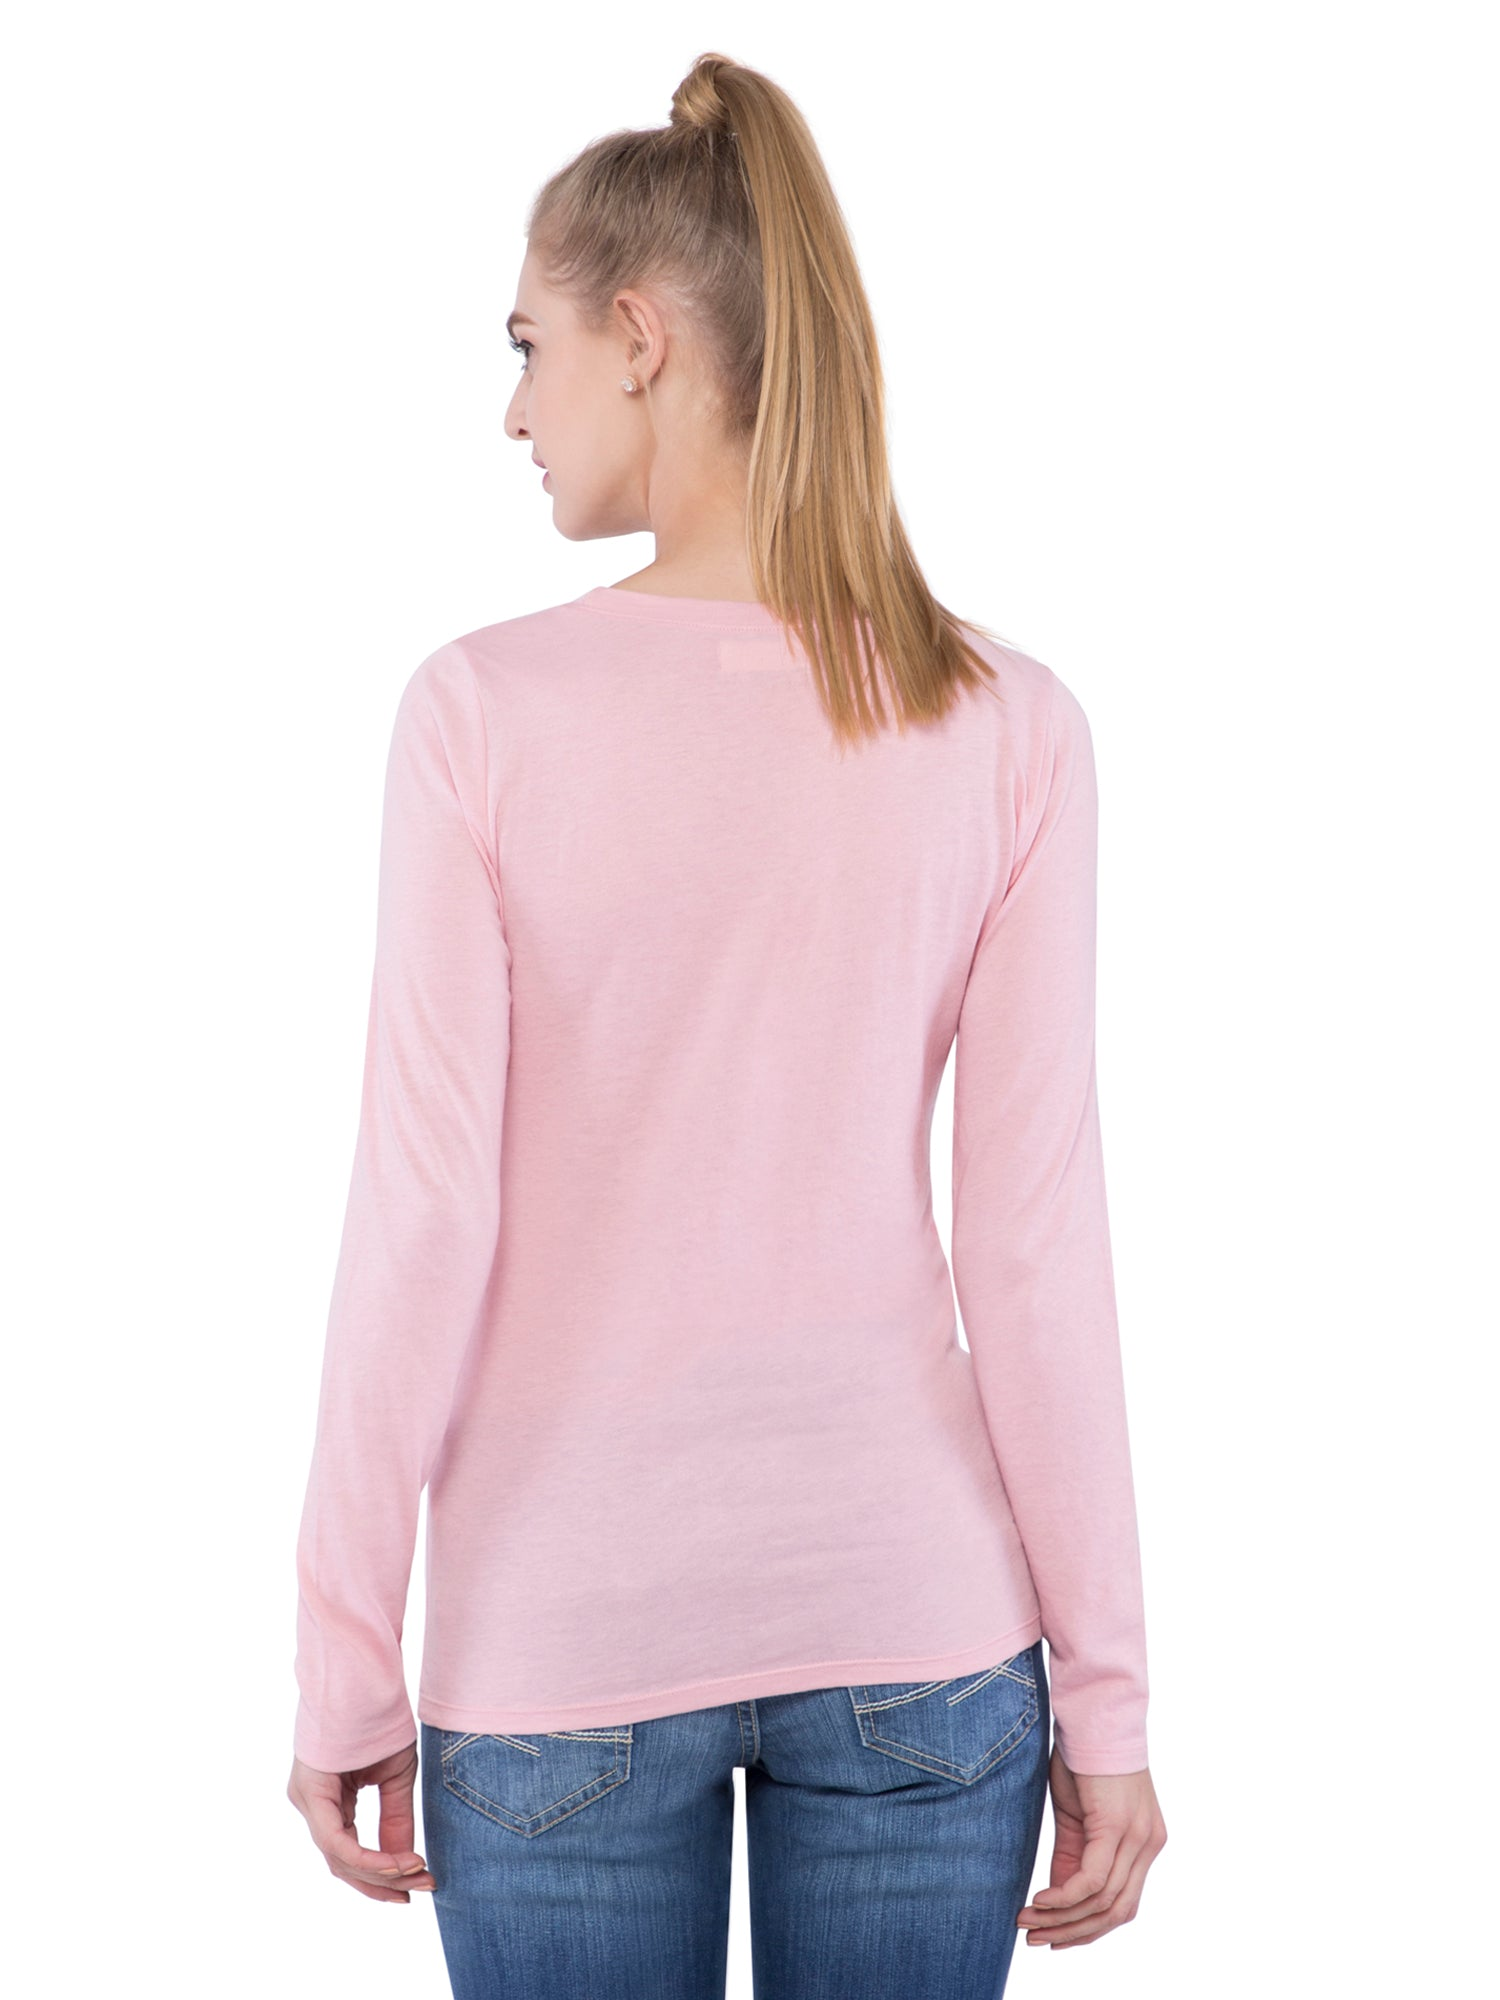 Hollister Women Light Pink Full Sleeve Round Neck Top